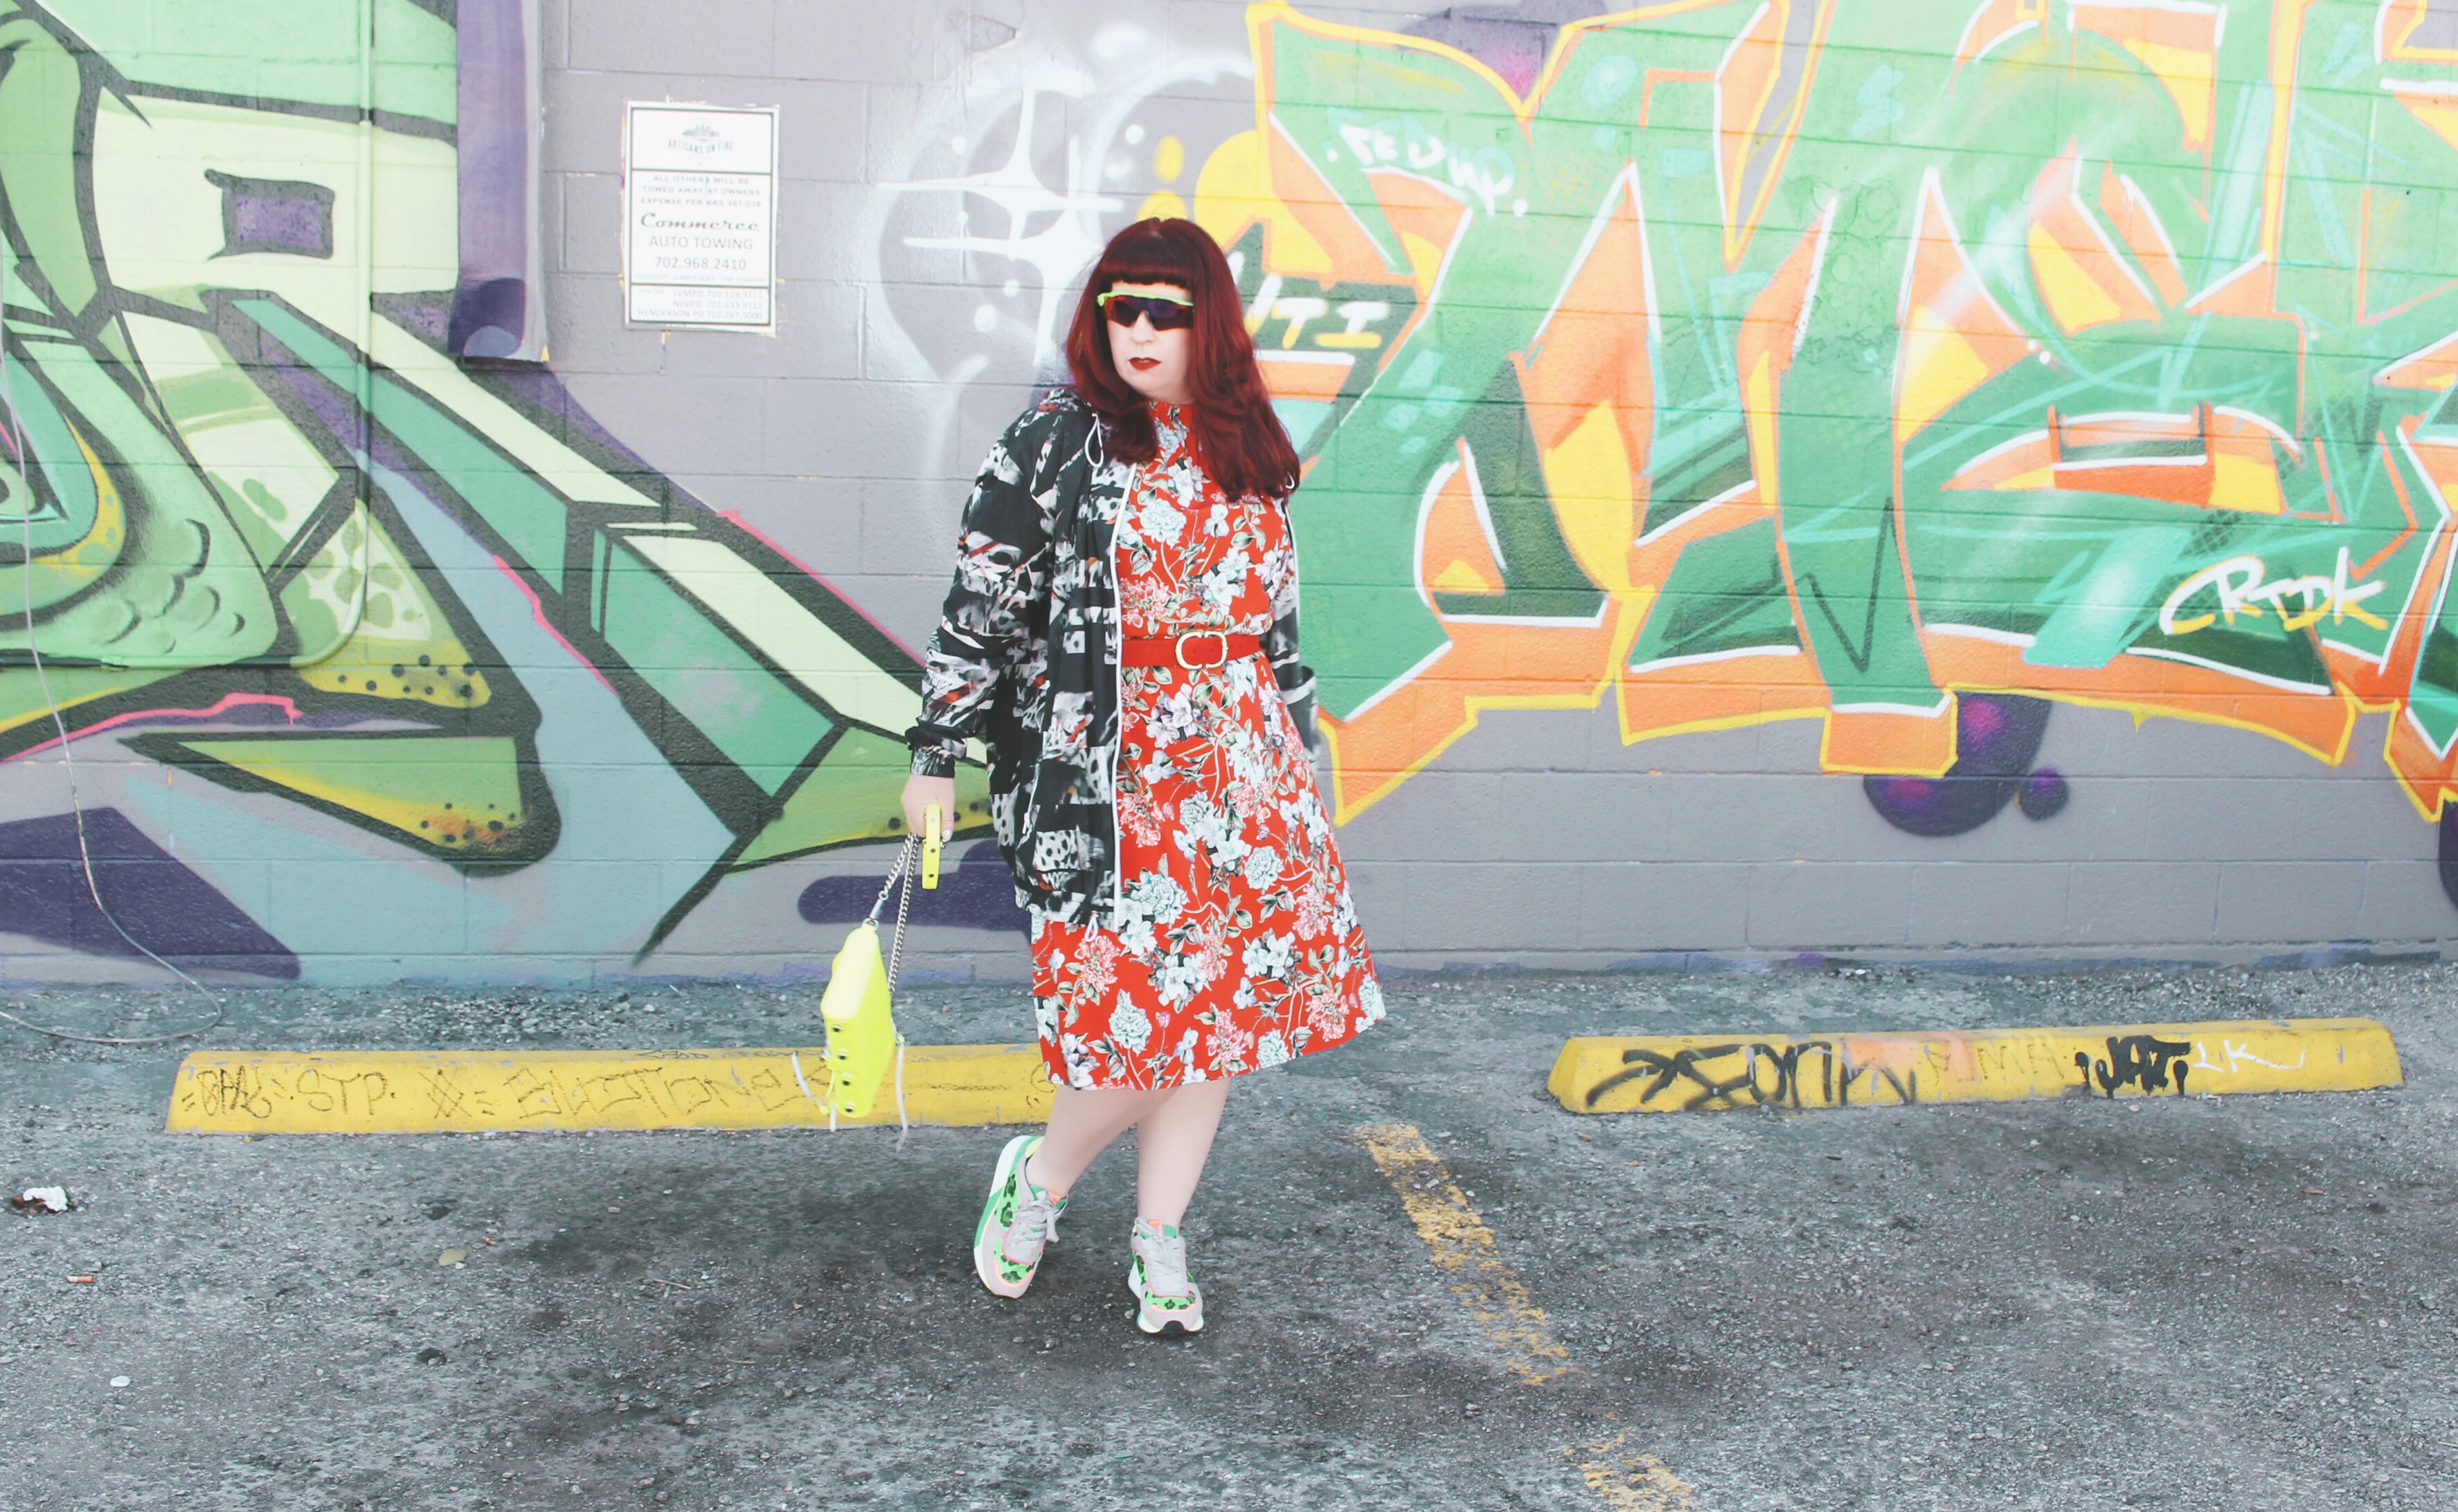 The Three Must Have S's of Spring: Shields, Sneakers and Spray Jackets